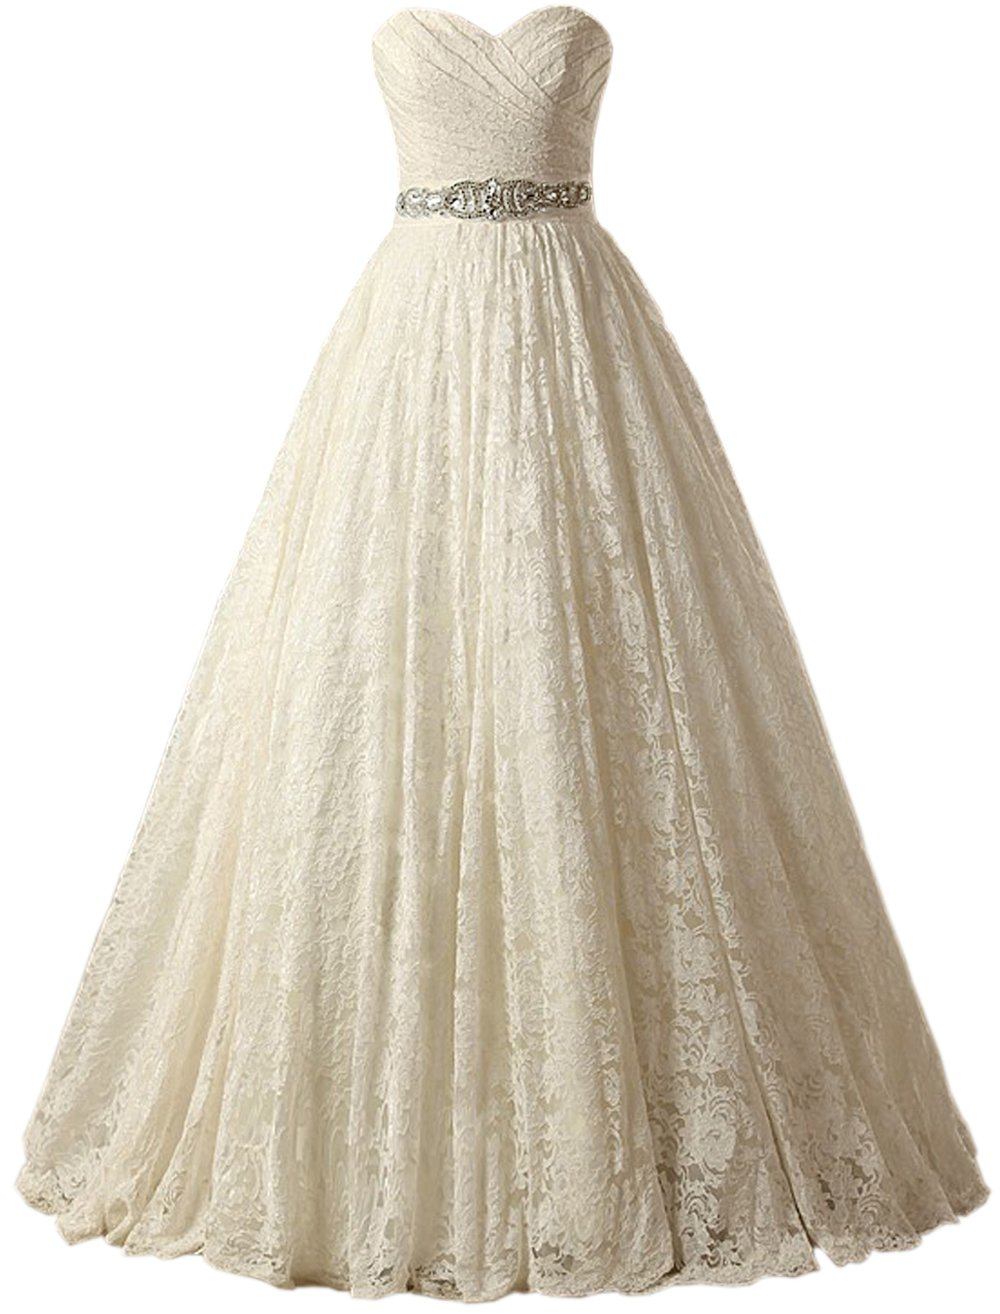 ccfeec7533 SOLOVEDRESS Women s Ball Gown Lace Princess Wedding Dress 2017 Sash Beaded  Bridal Evening Gown Champagne product